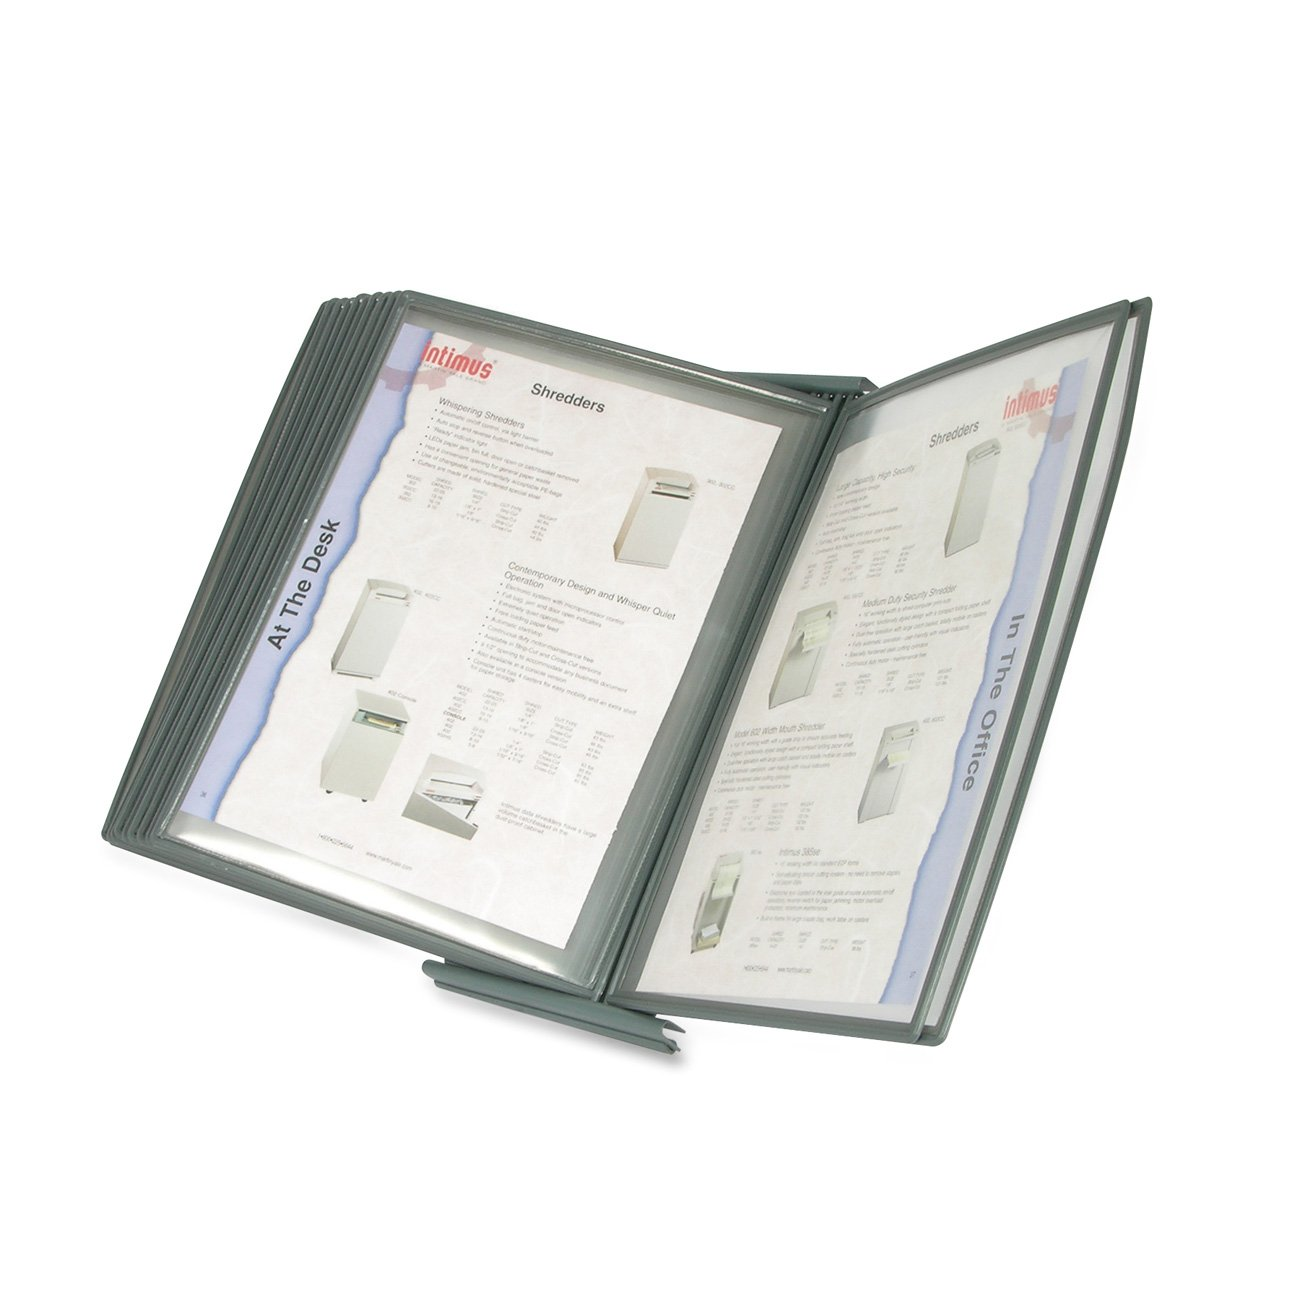 Martin Yale MVSM10 MasterView Executive Desktop Stand, 10 Sleeves Display up To 20 Documents at a Time, Sleeves Hold 8 1/2'' x 11'' and A-4 Size Paper